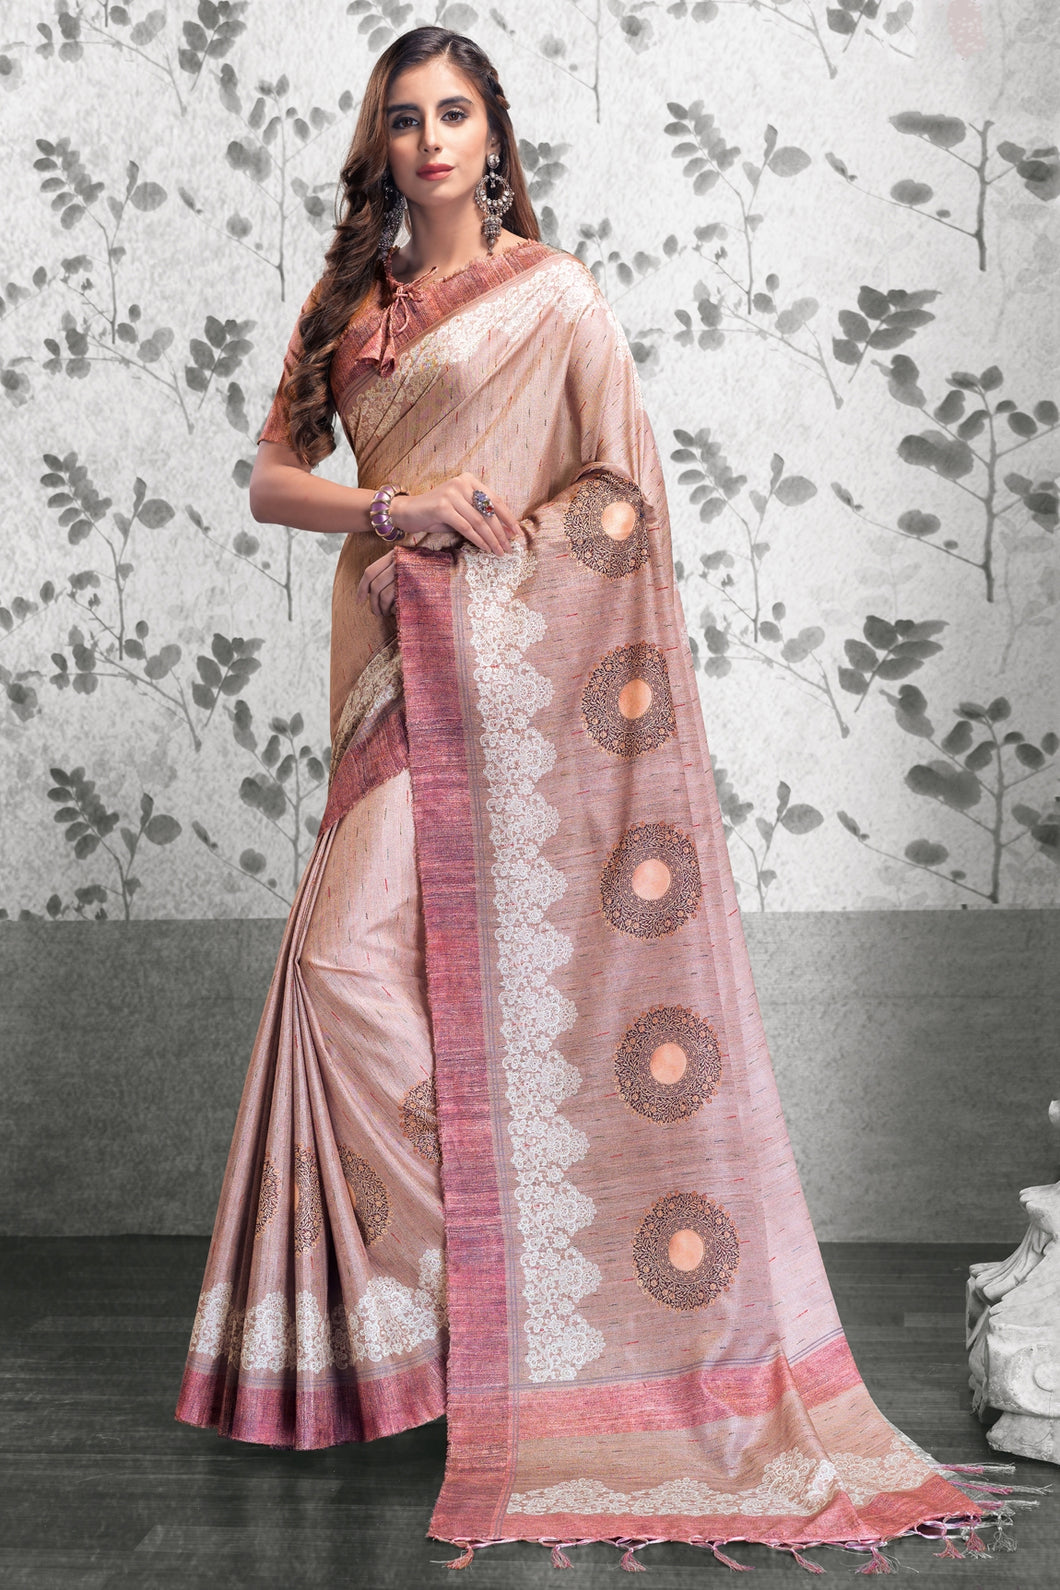 Bhelpuri Light Peach Manipuri Silk Printed Saree with Blouse Piece